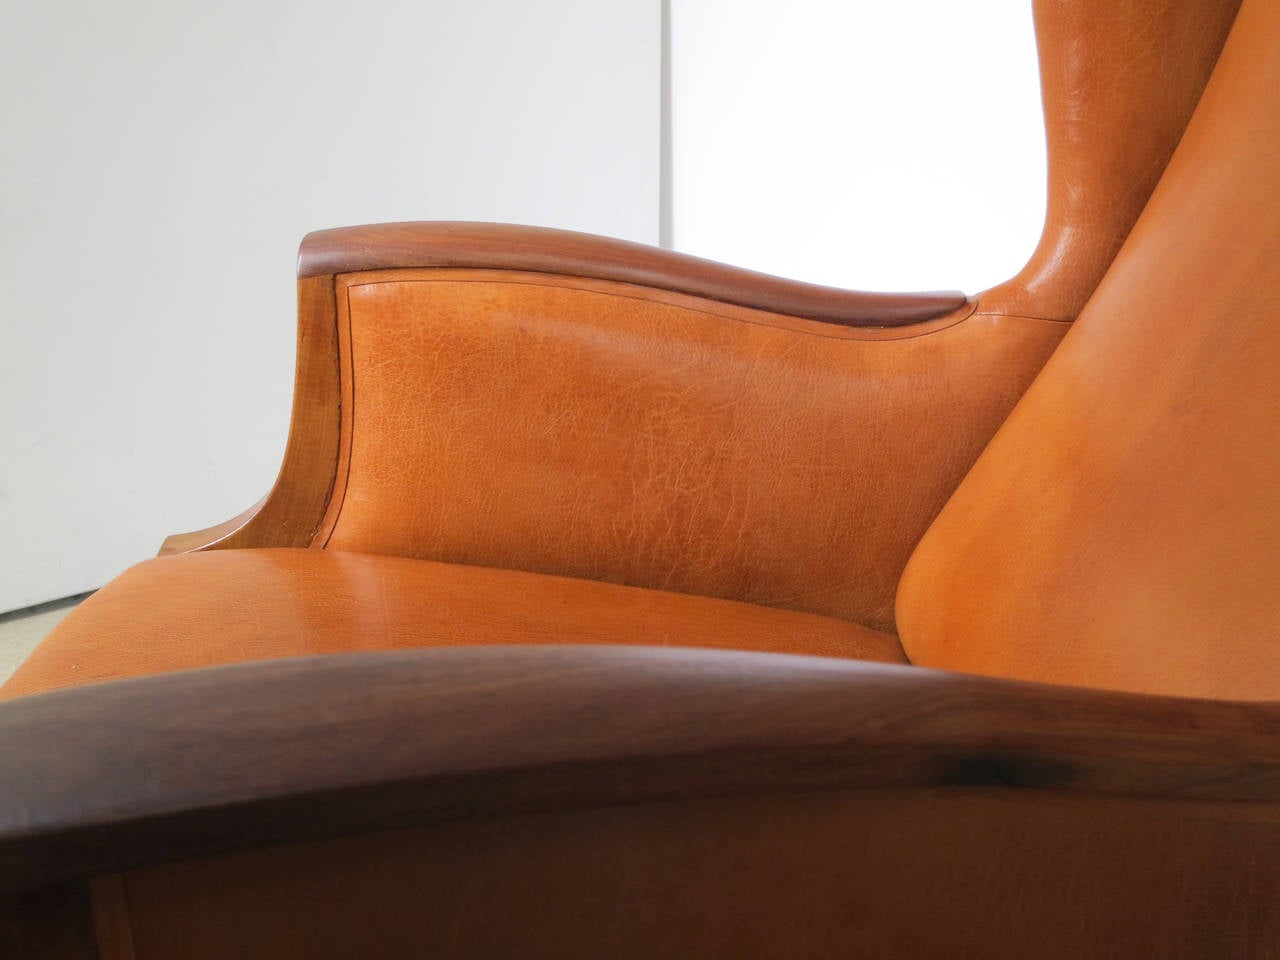 1930s Wingback Chair in Nigerian Leather and Cuban Mahogany by Frits Henningsen 5